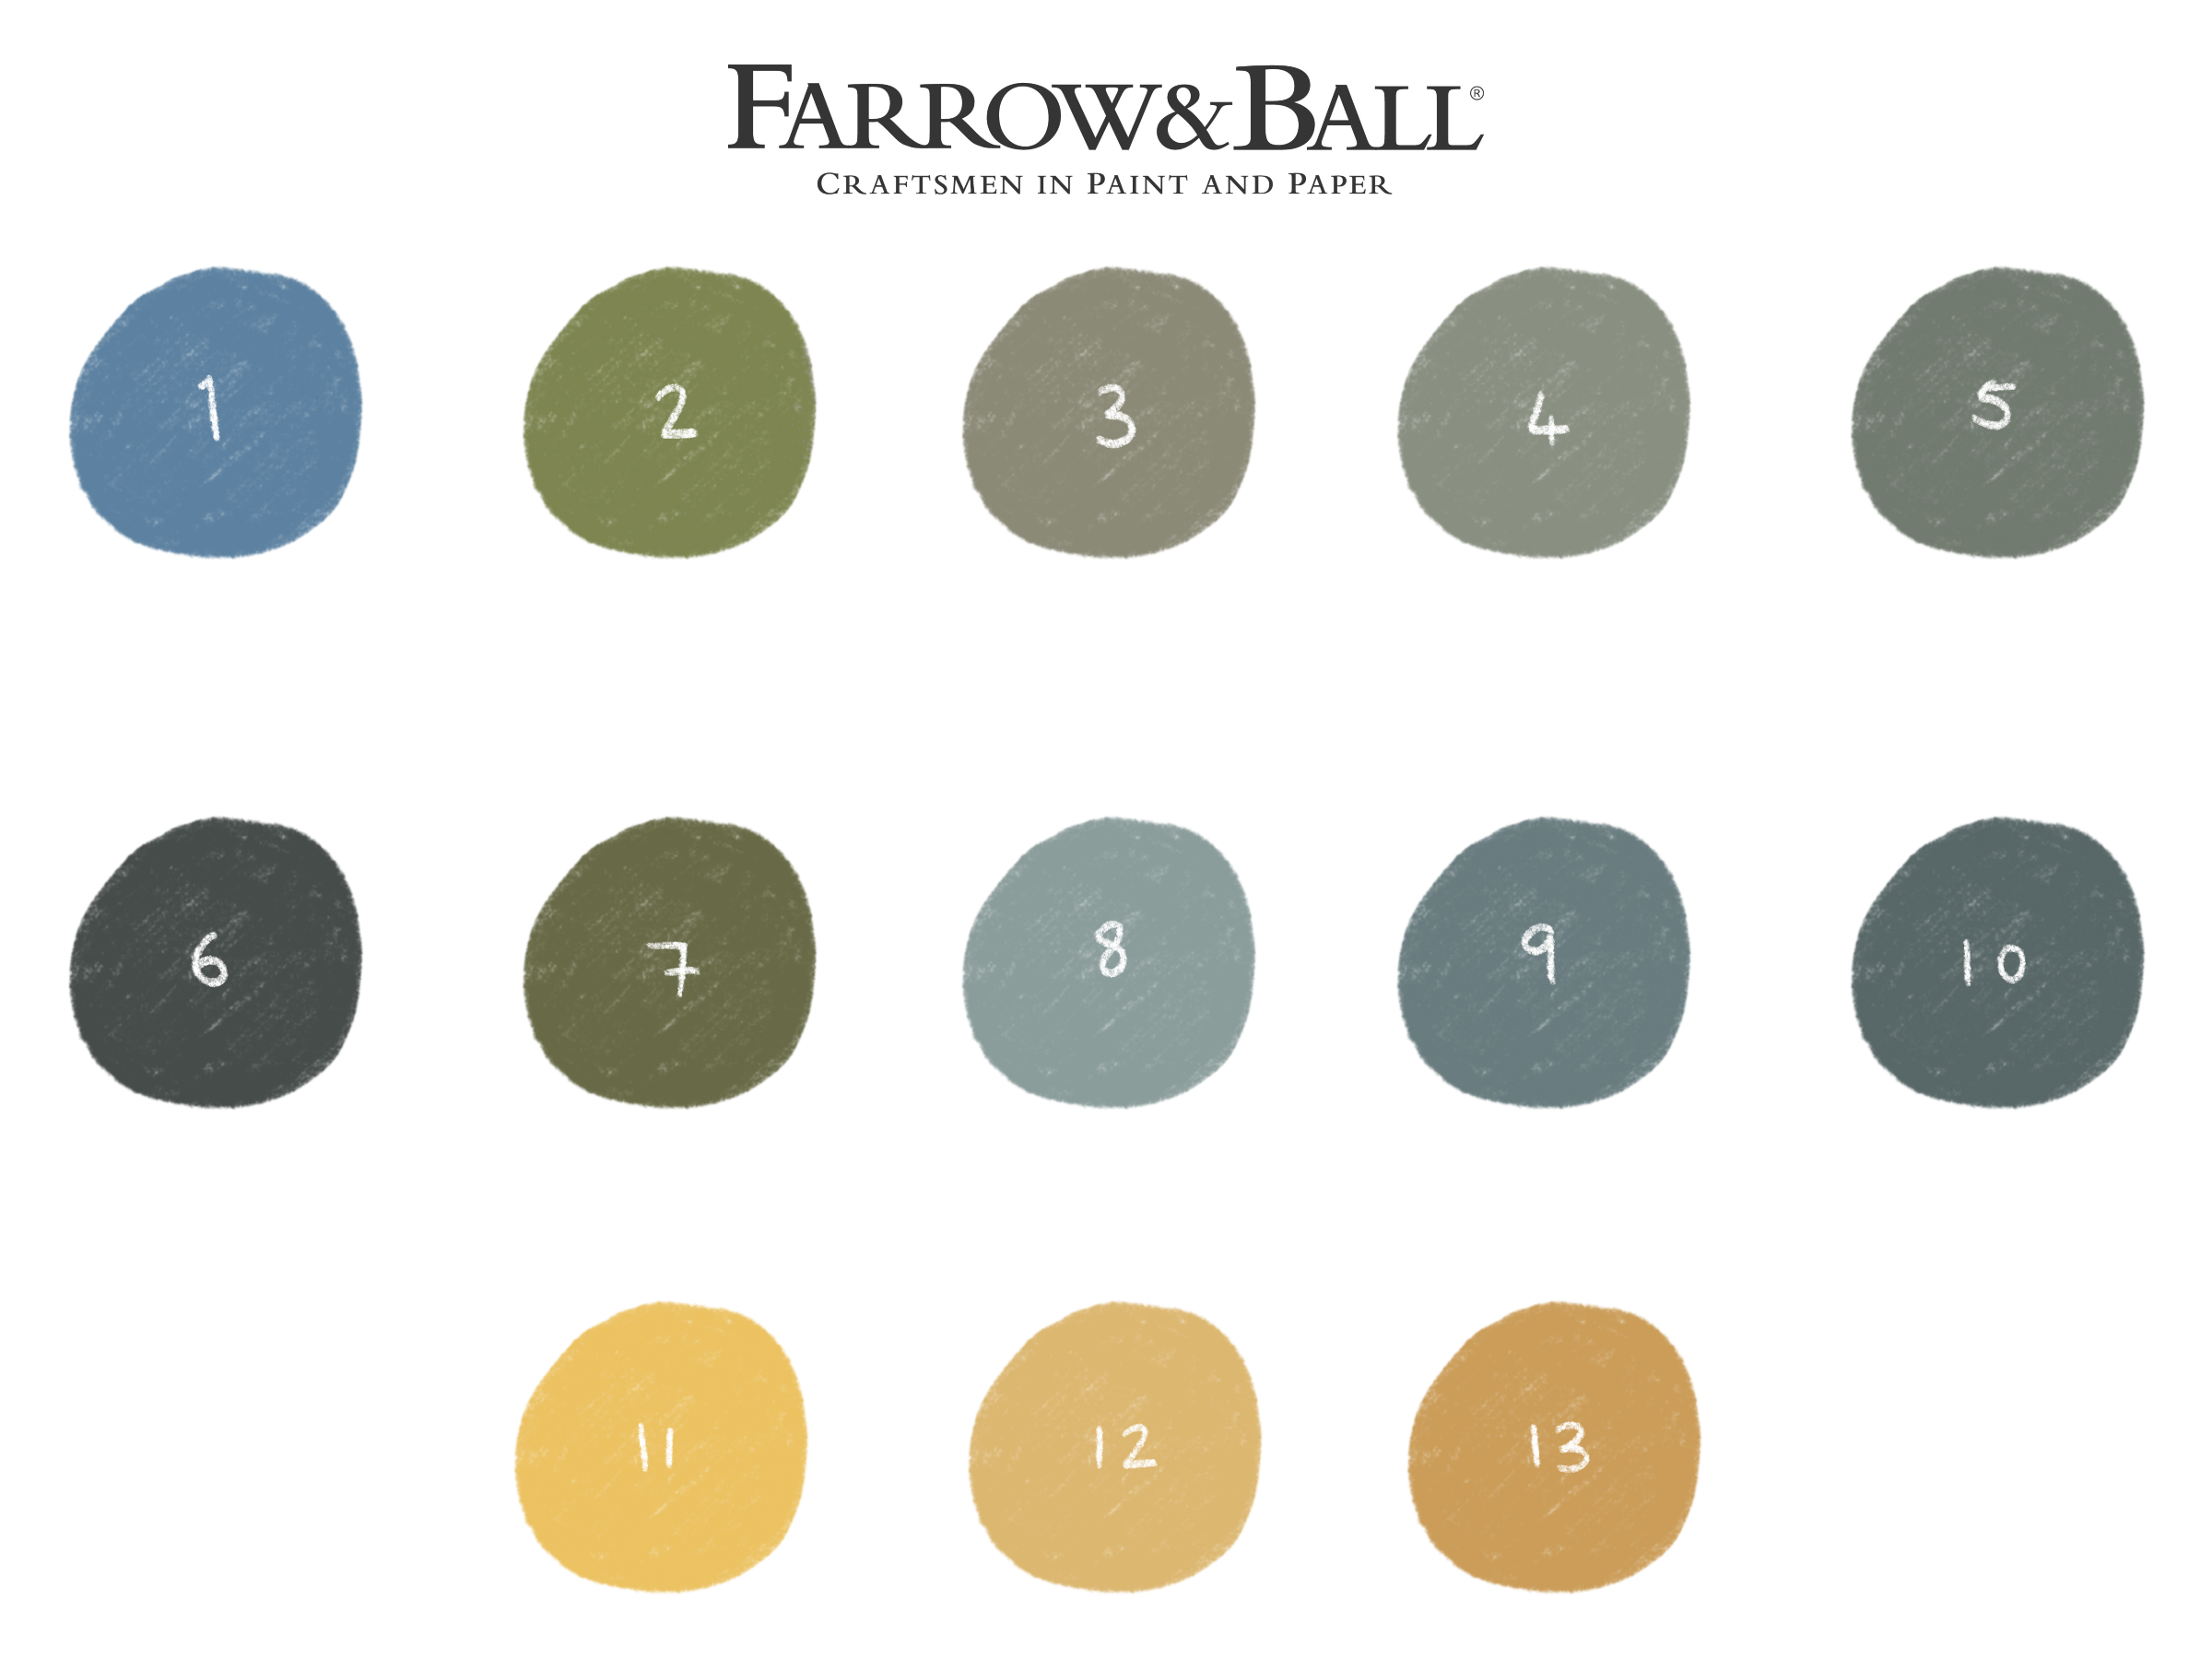 farrow-and-ball-paint-colours